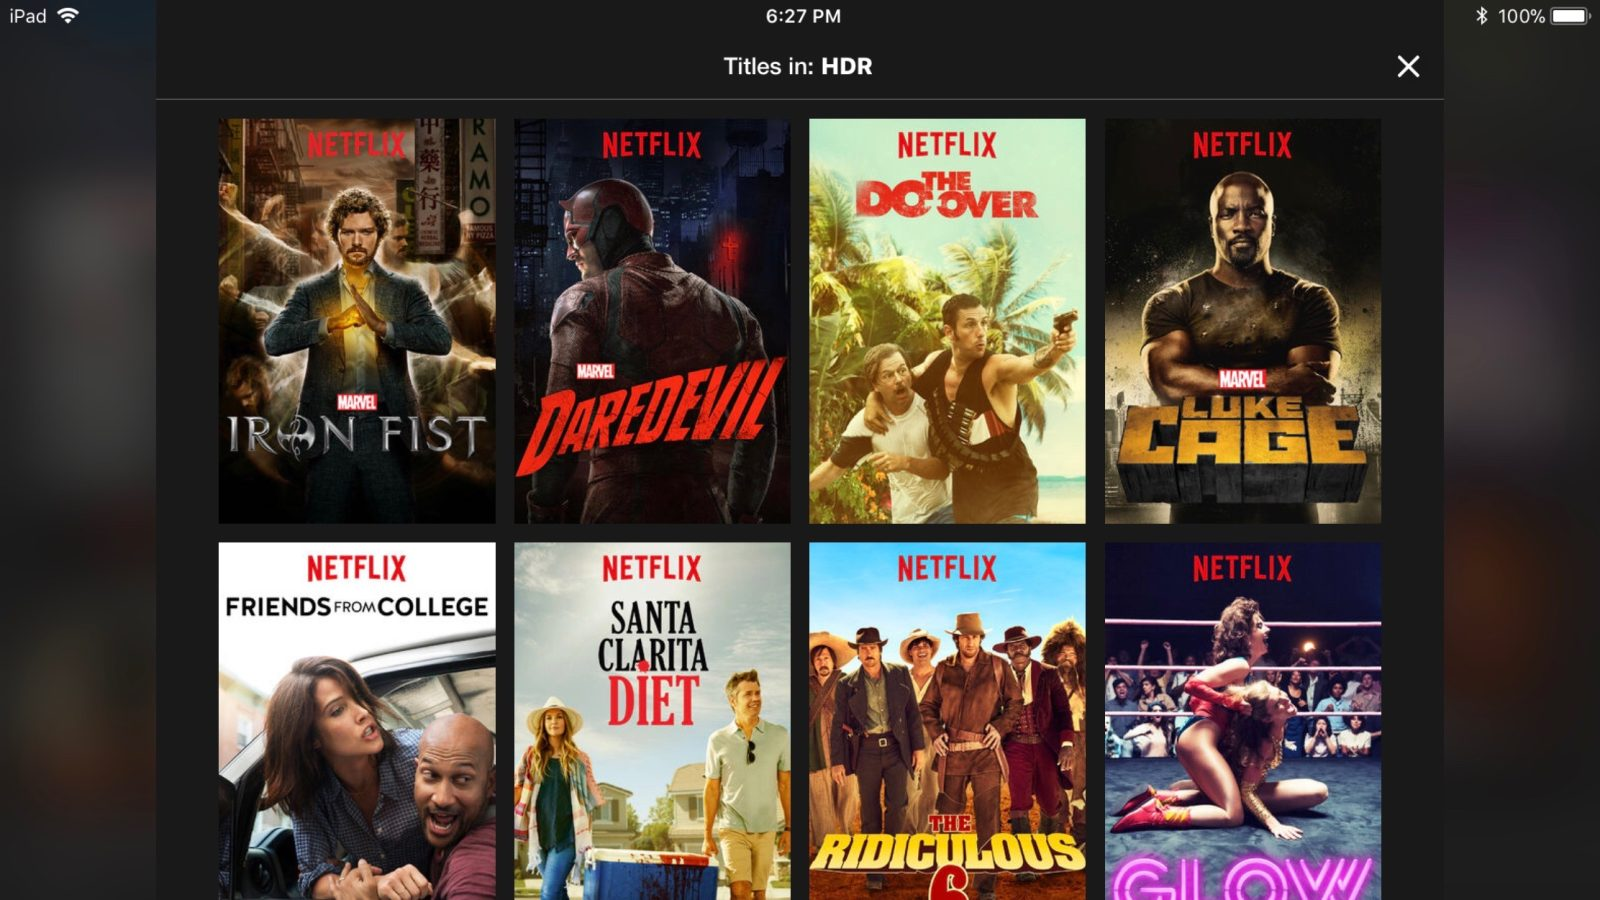 Netflix for iOS updated with support for HDR streaming on select devices